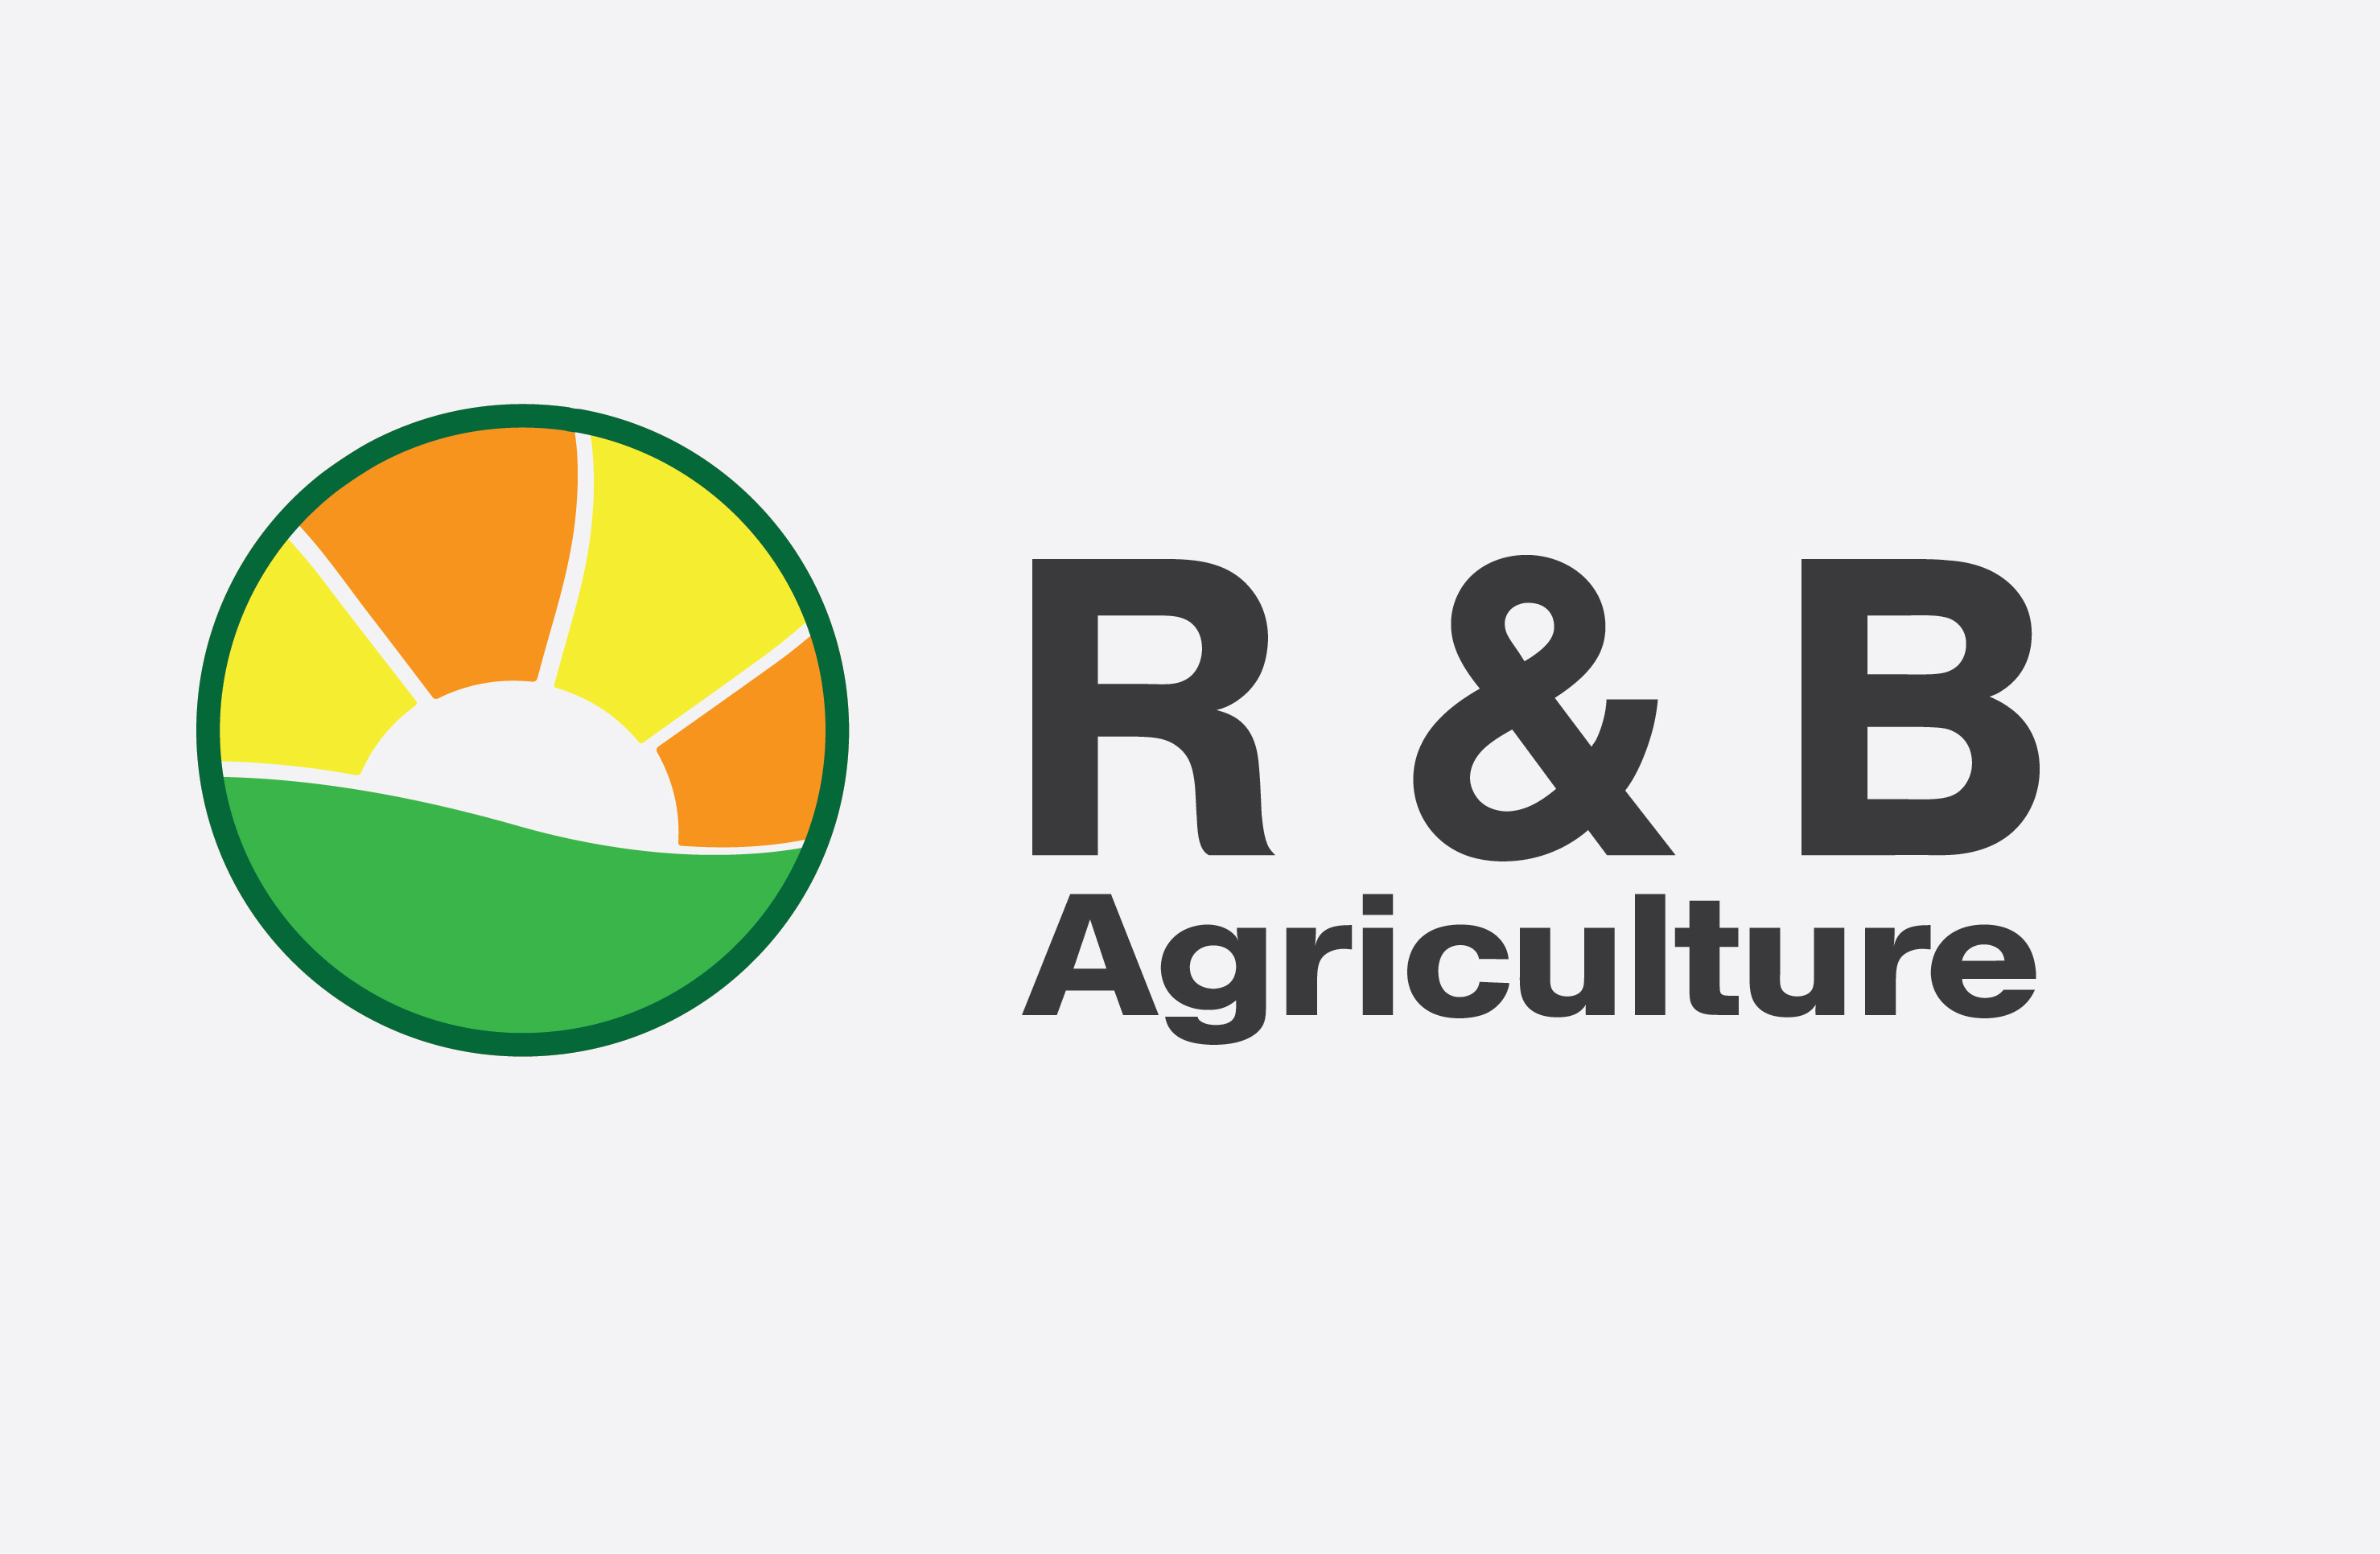 Logo Design by Aniketb - Entry No. 66 in the Logo Design Contest Captivating Logo Design for R & B Agriculture.